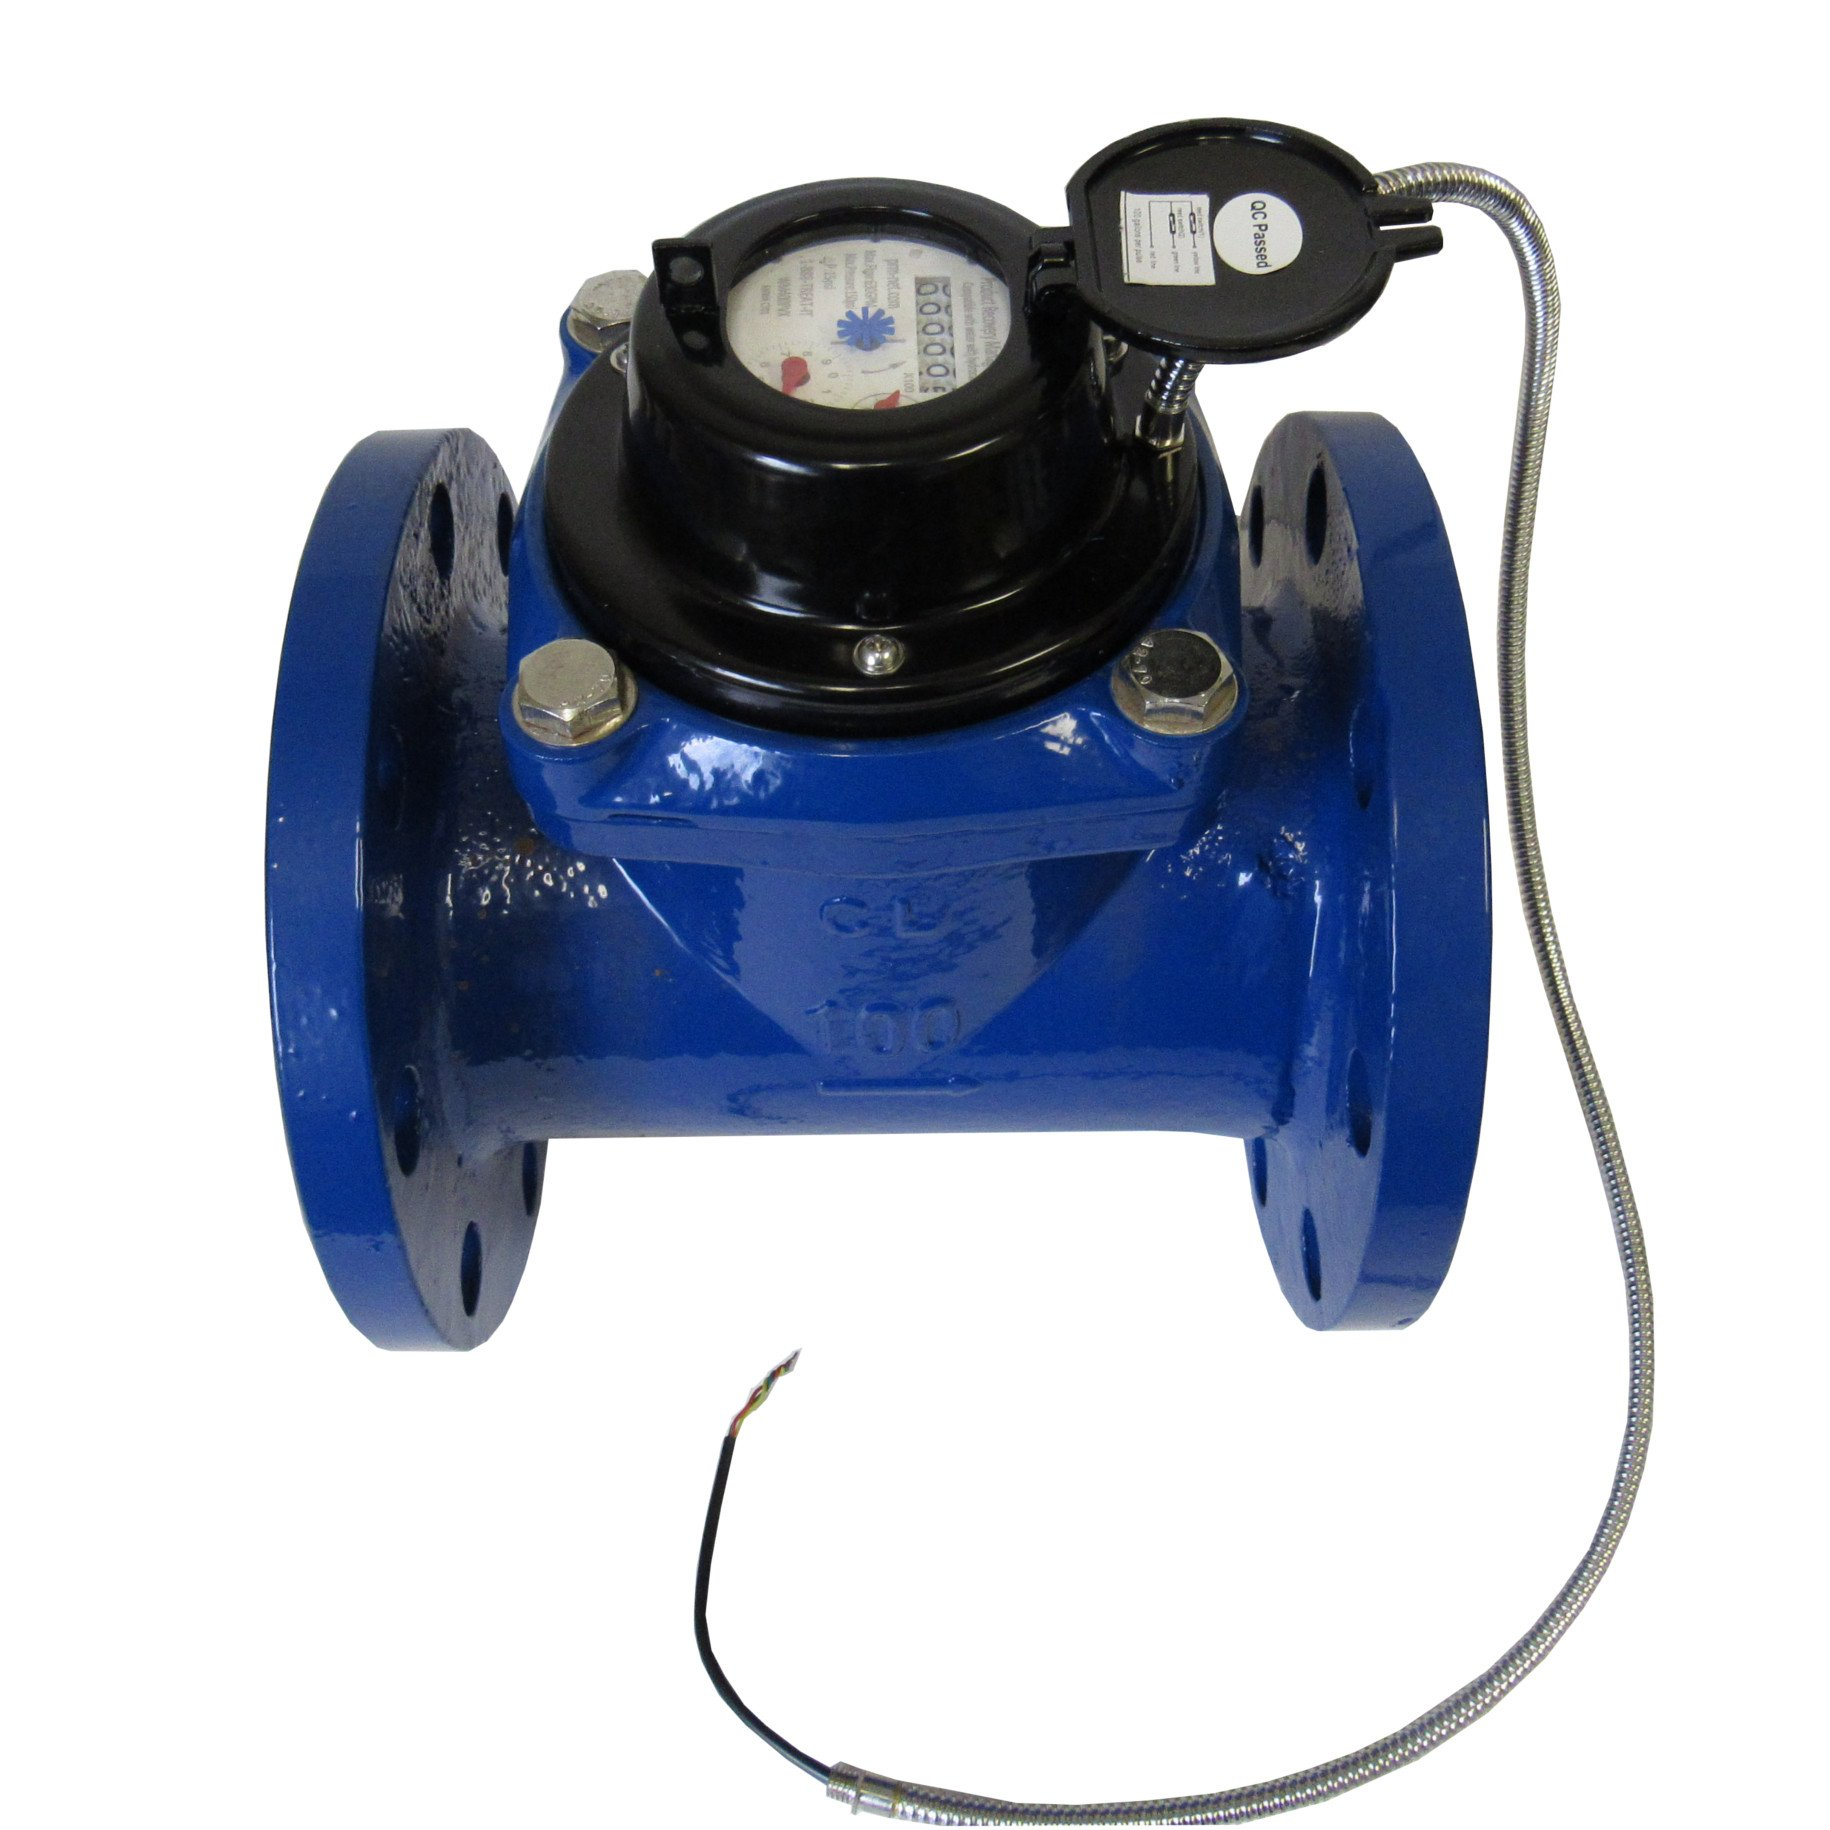 4 INCH FLANGED MULTI-JET WATER METER WITH PULSE OUTPUT - NOT FOR POTABLE WATER